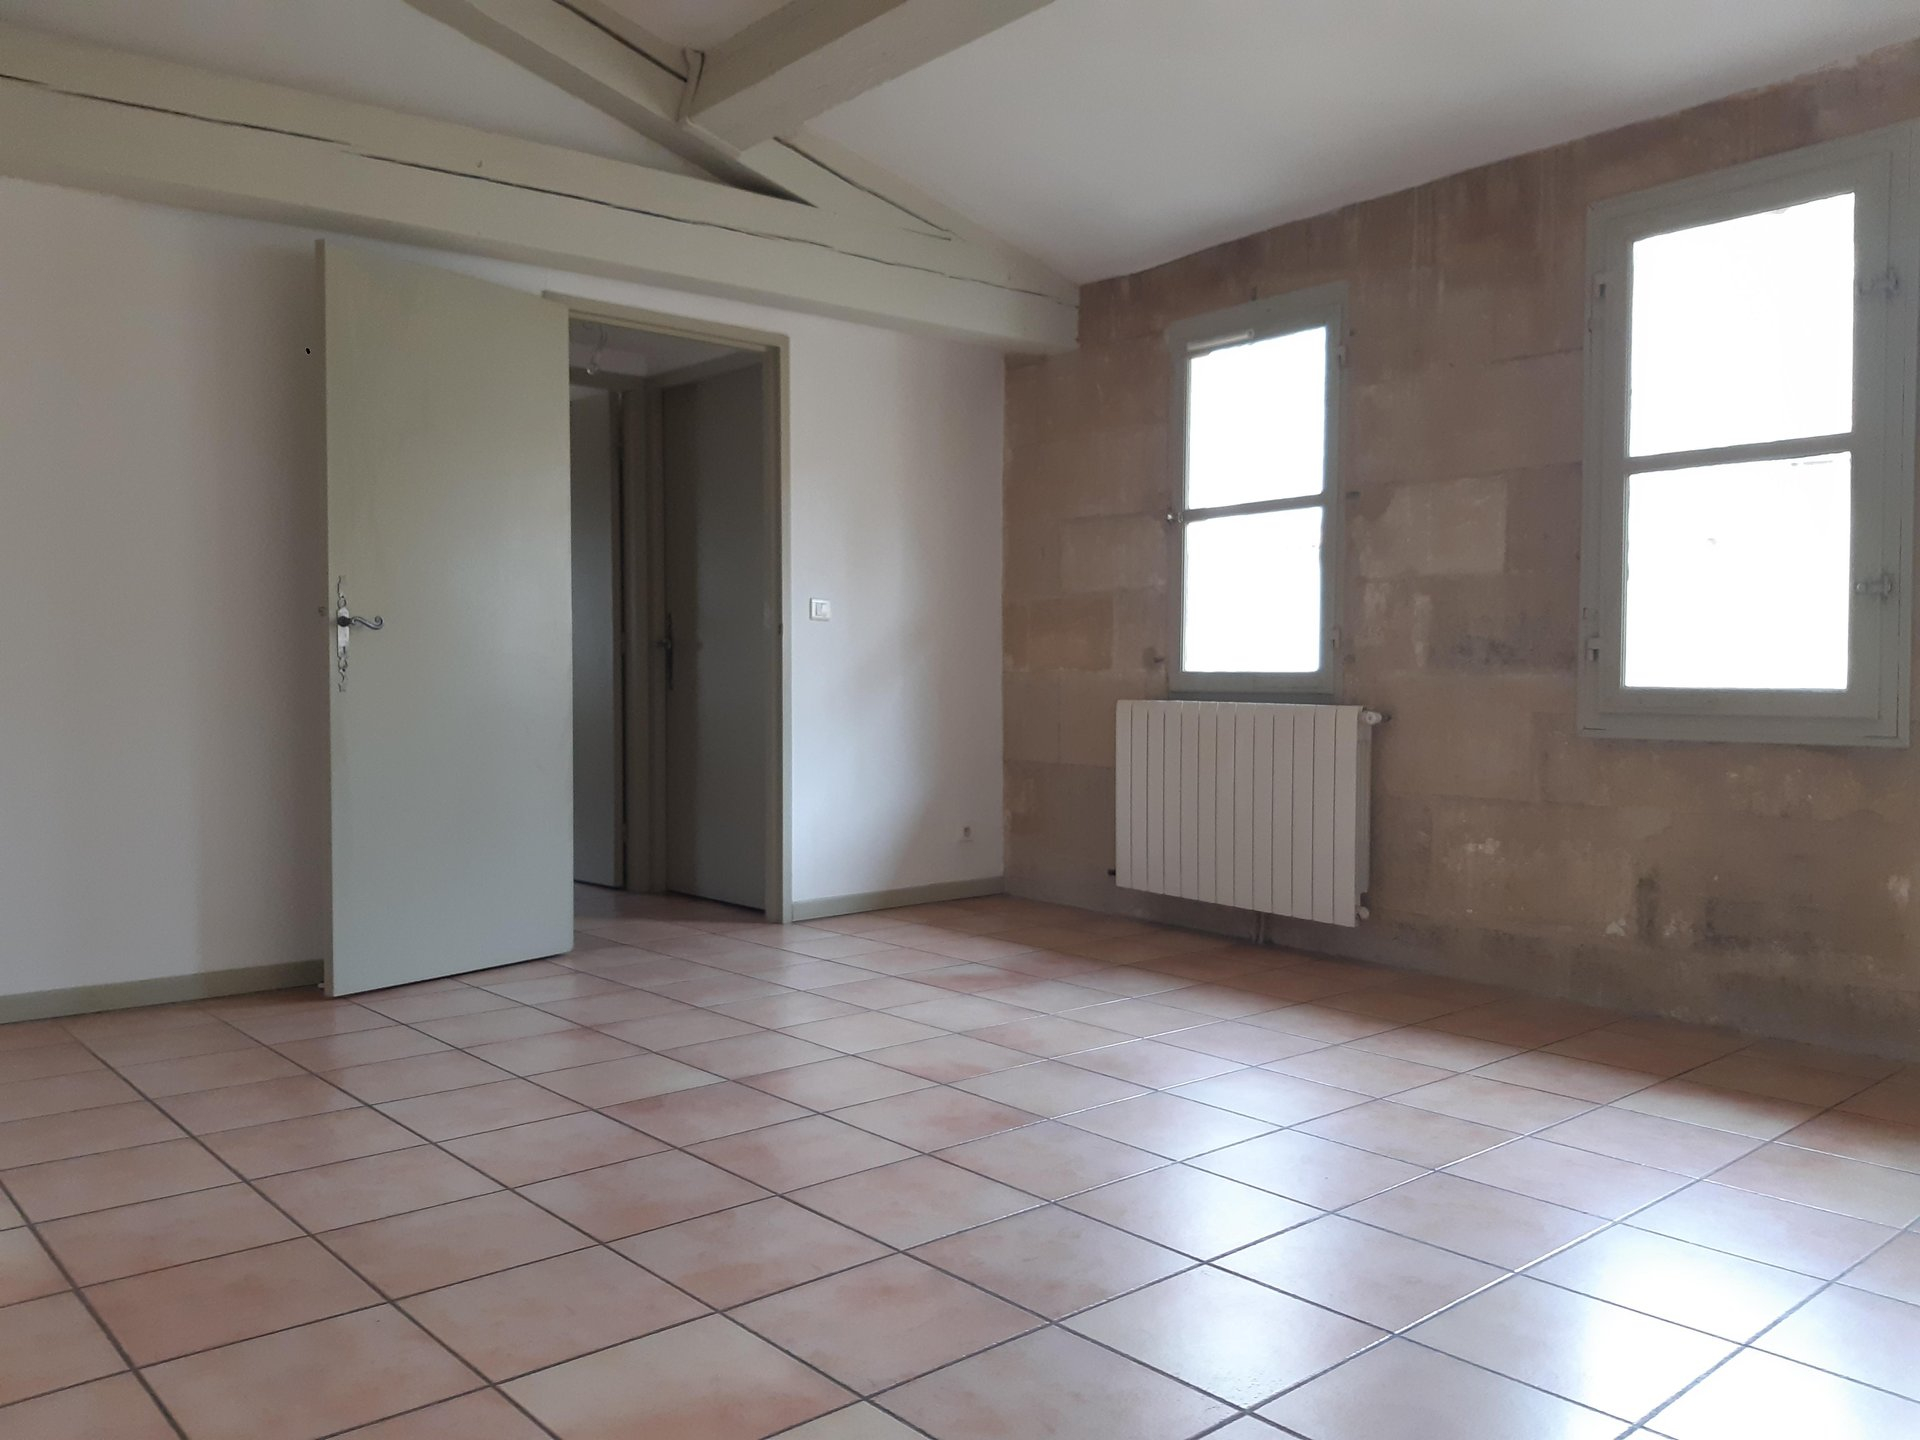 Location Appartement TARASCON Mandat : 1024